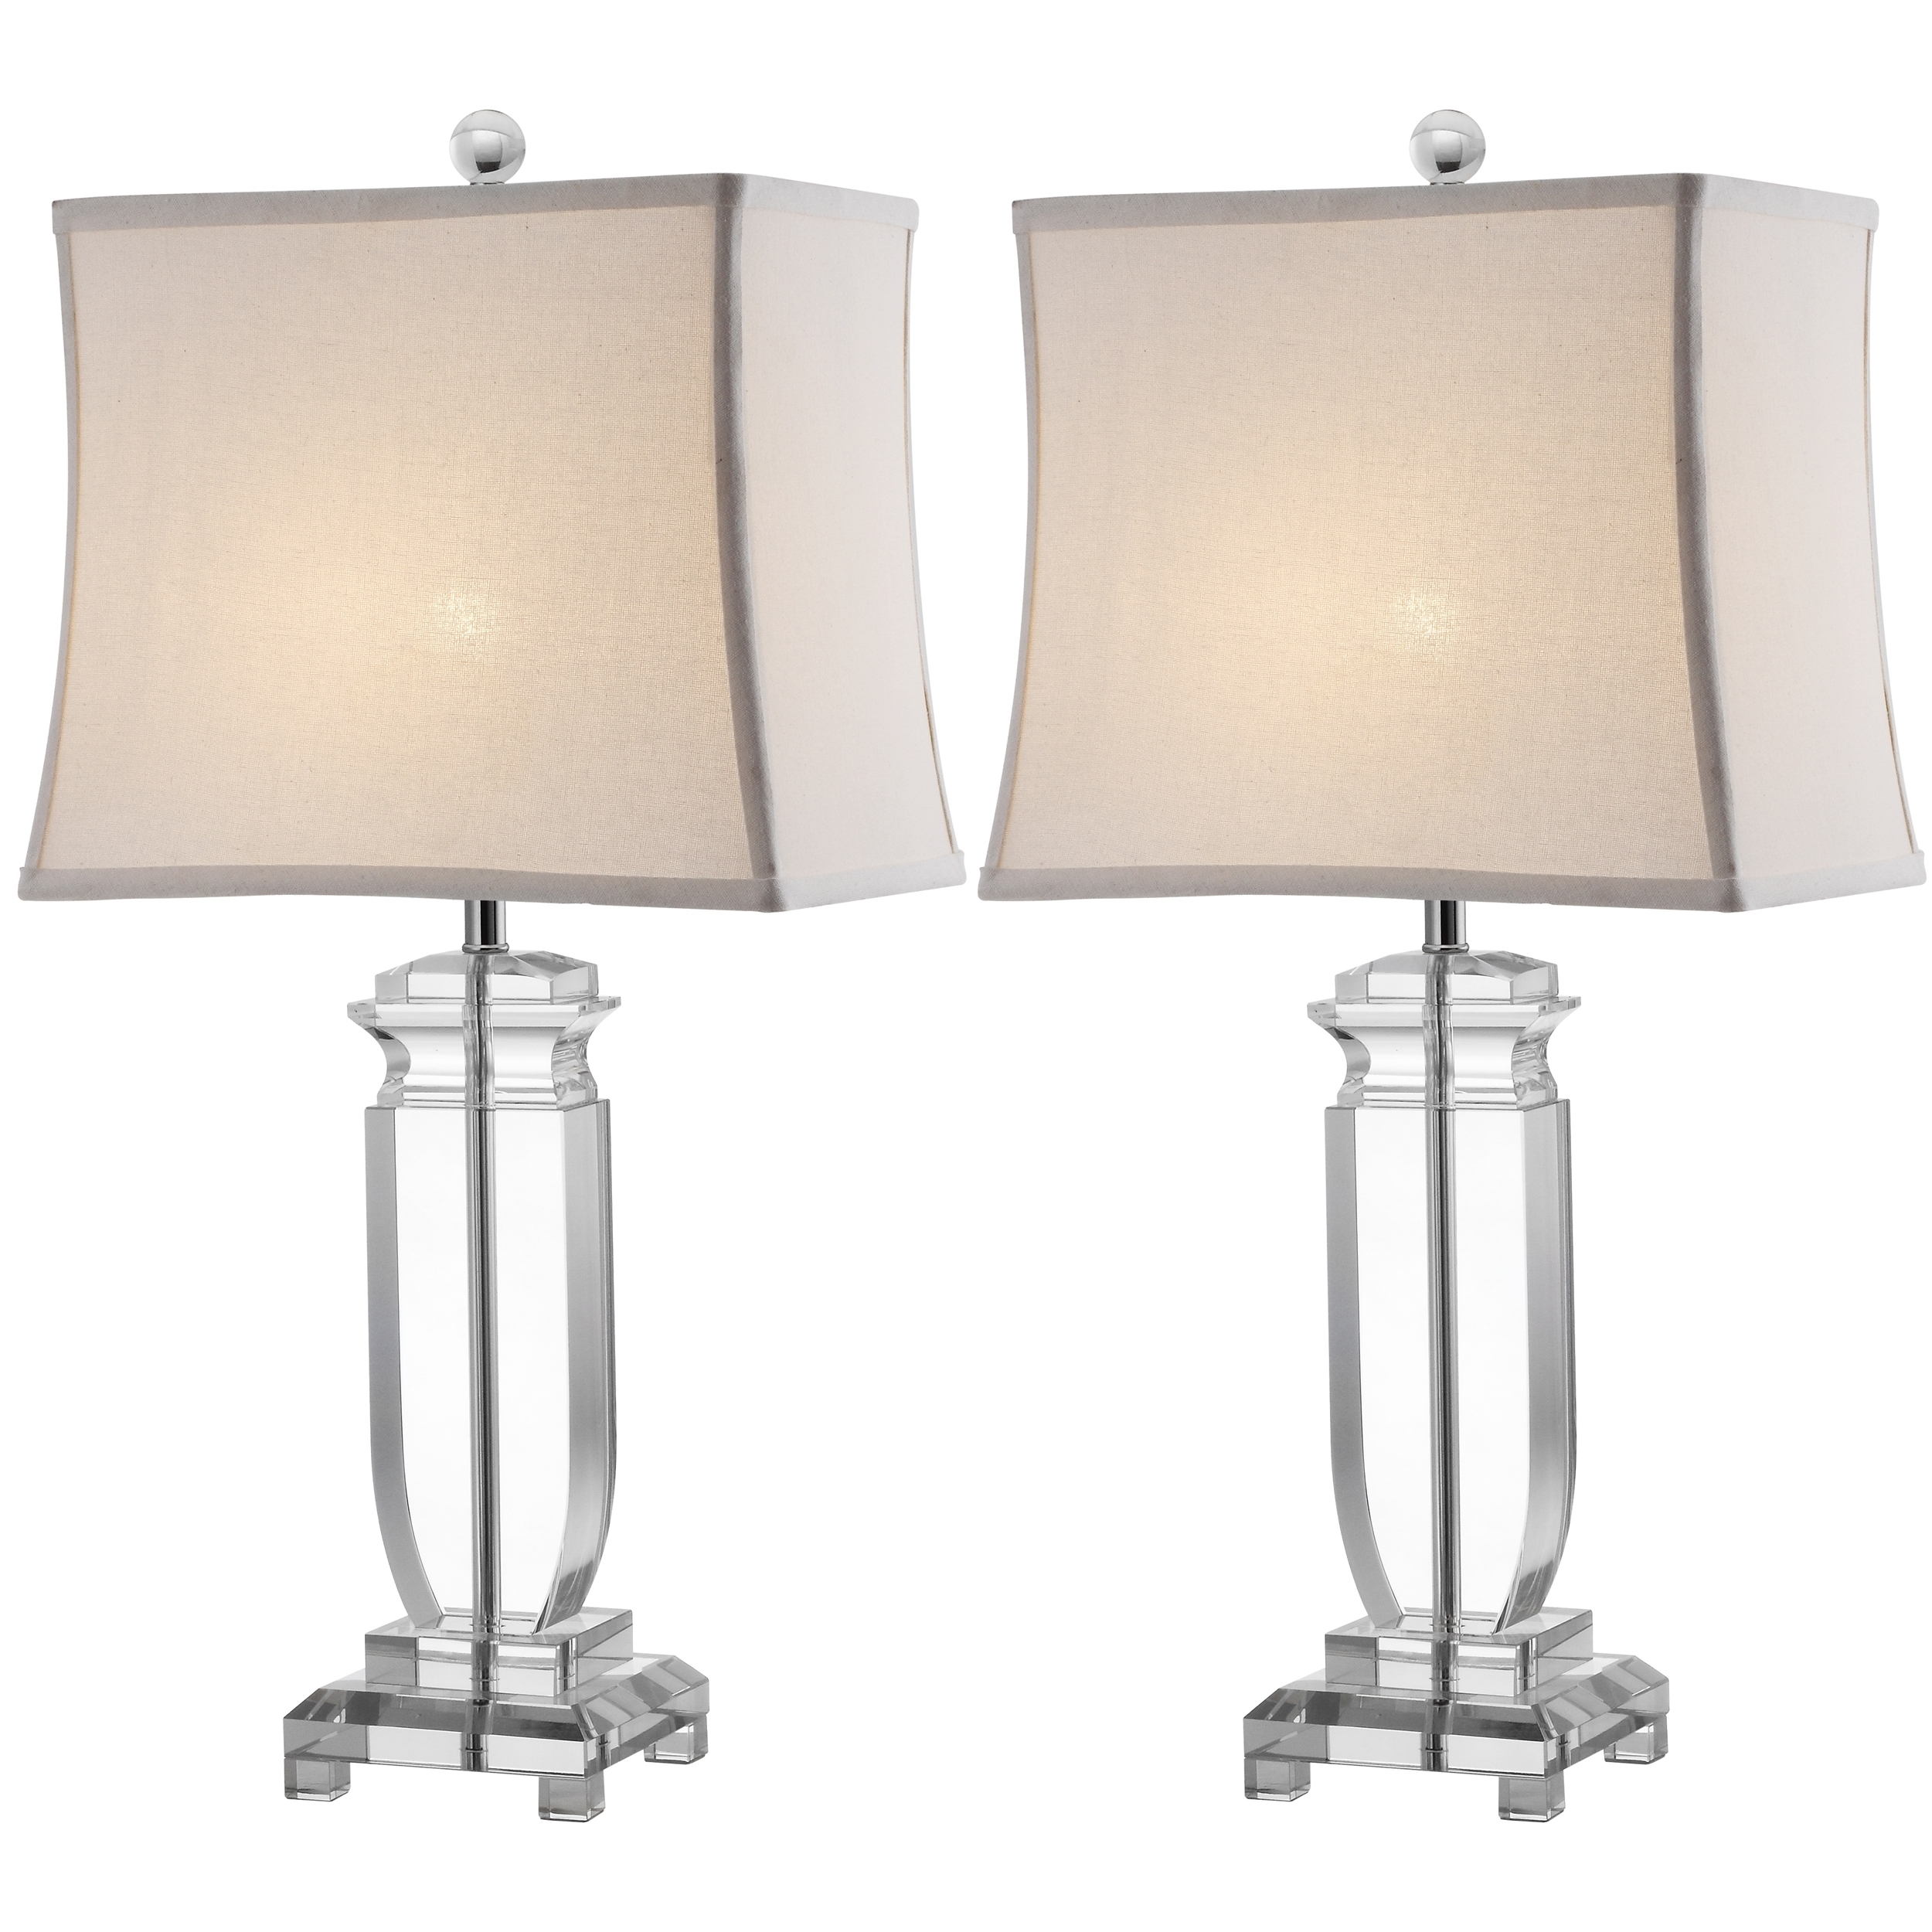 Crystal Living Room Table Lamps Pertaining To Fashionable Crystal Table Lamps For Living Room – Home Maximize Ideas (View 3 of 15)